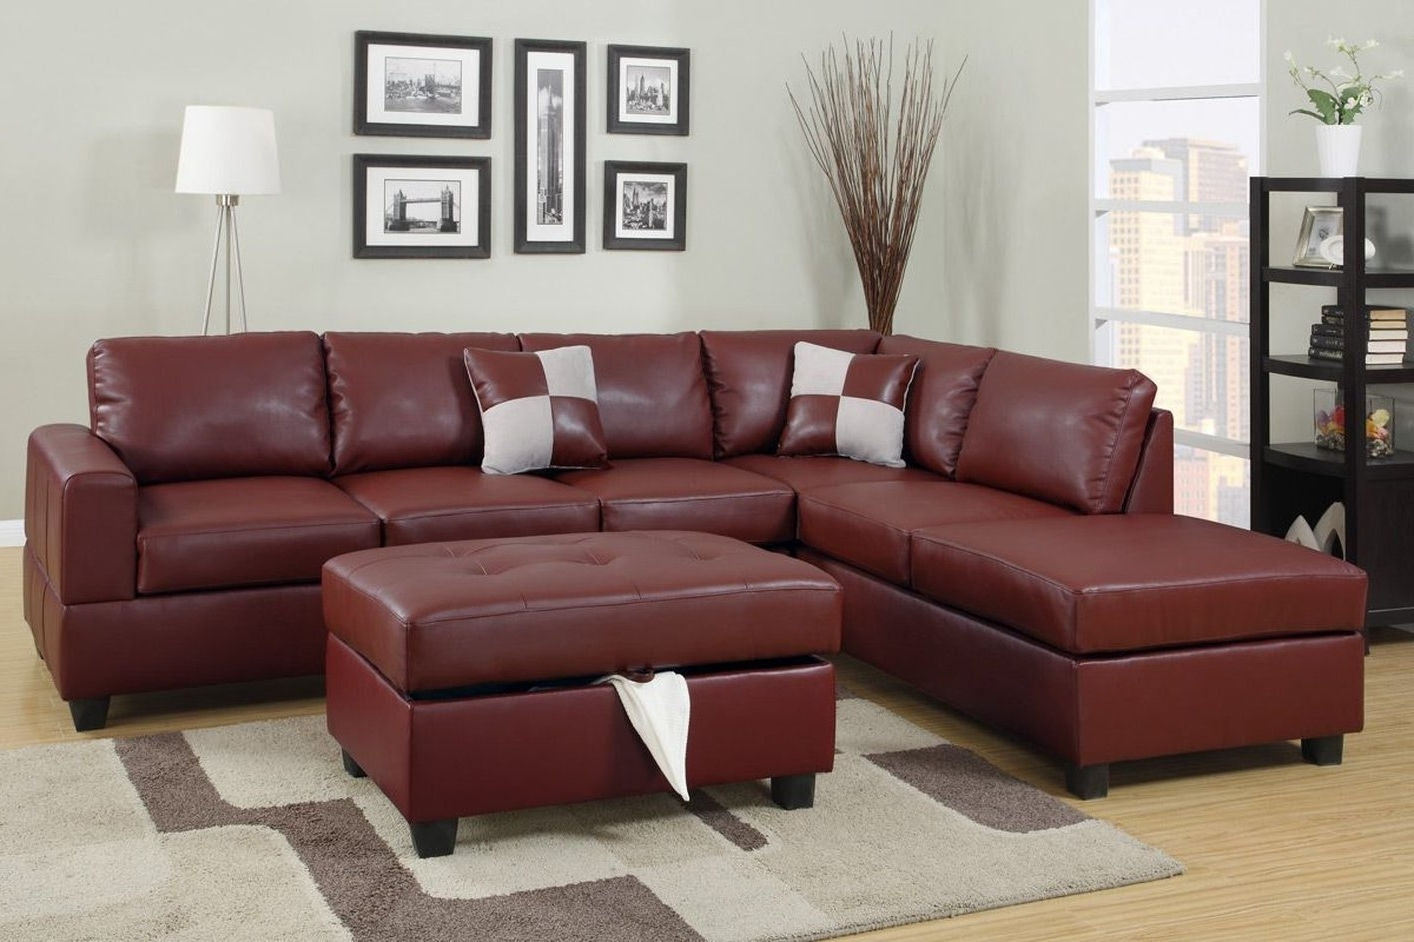 April Red Leather Sectional Sofa And Ottoman – Steal A Sofa Pertaining To Best And Newest Red Leather Sectional Couches (View 7 of 15)